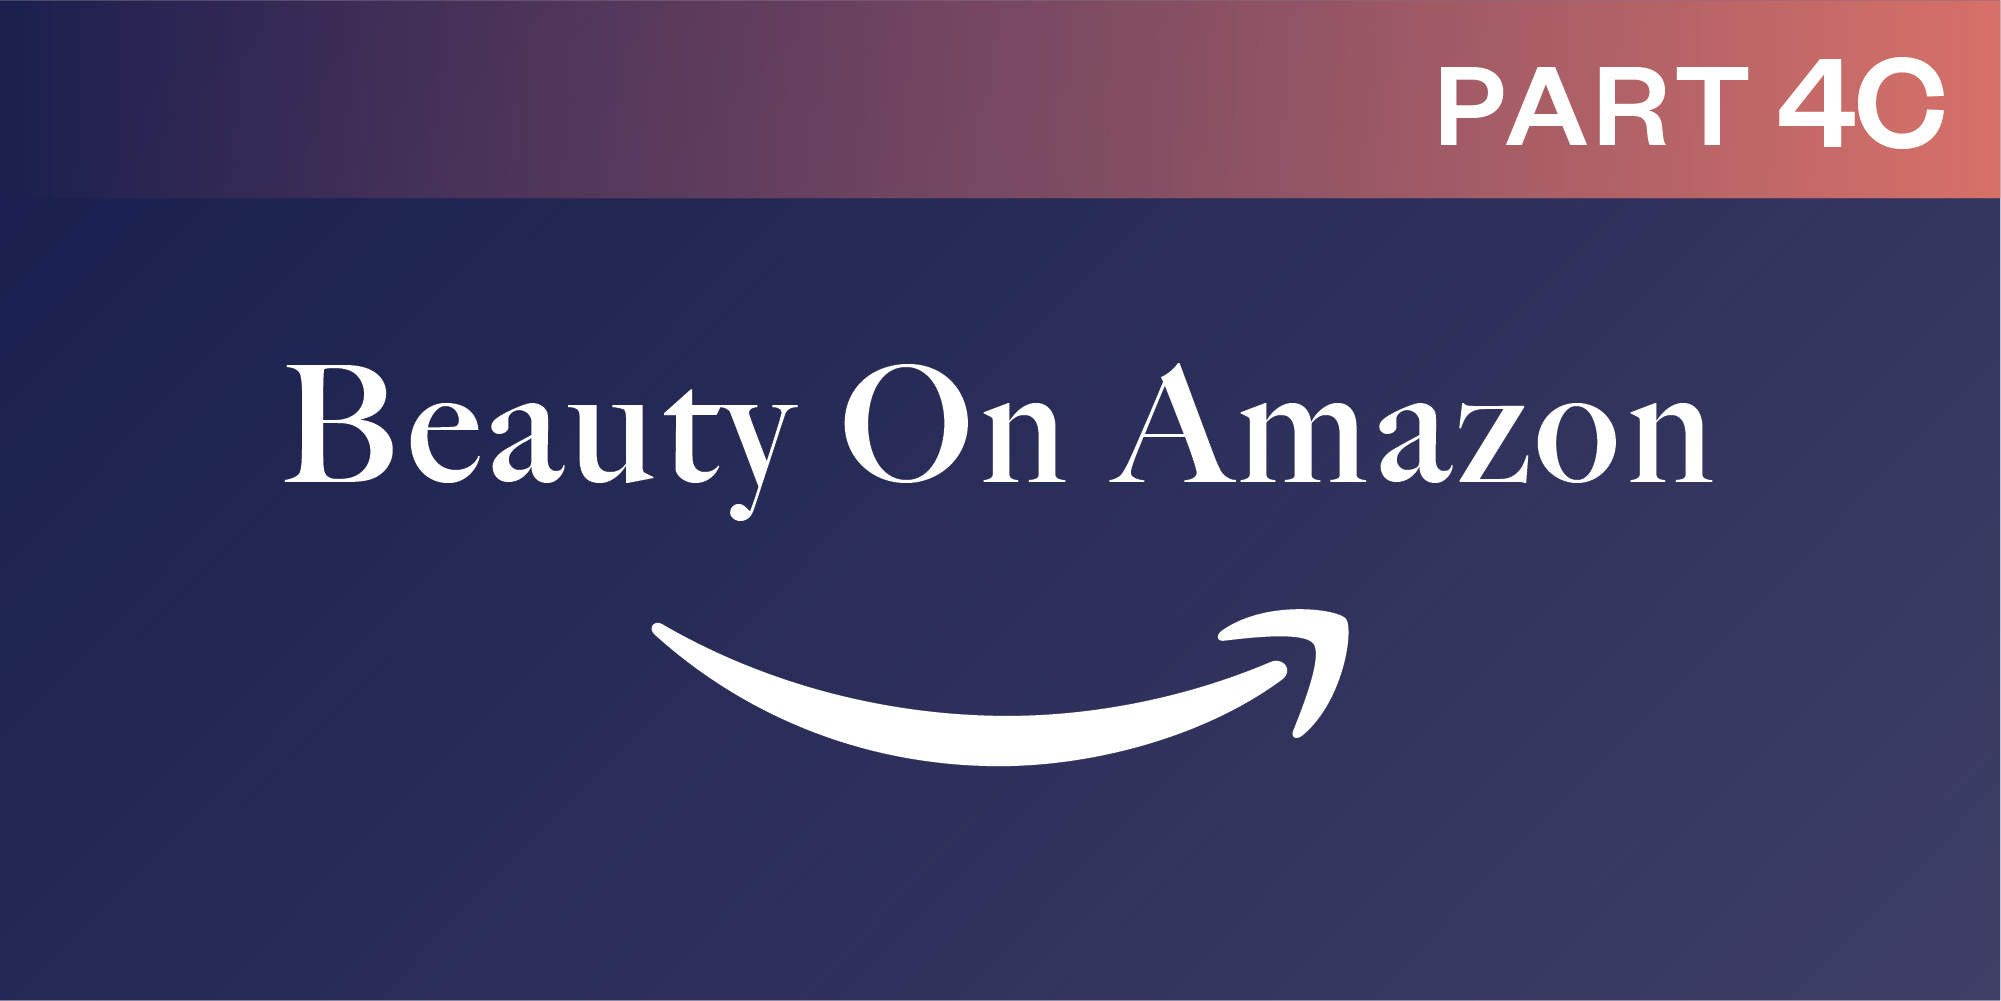 Beauty On Amazon Part 4C: Established Indie Brands Play Offense On Amazon